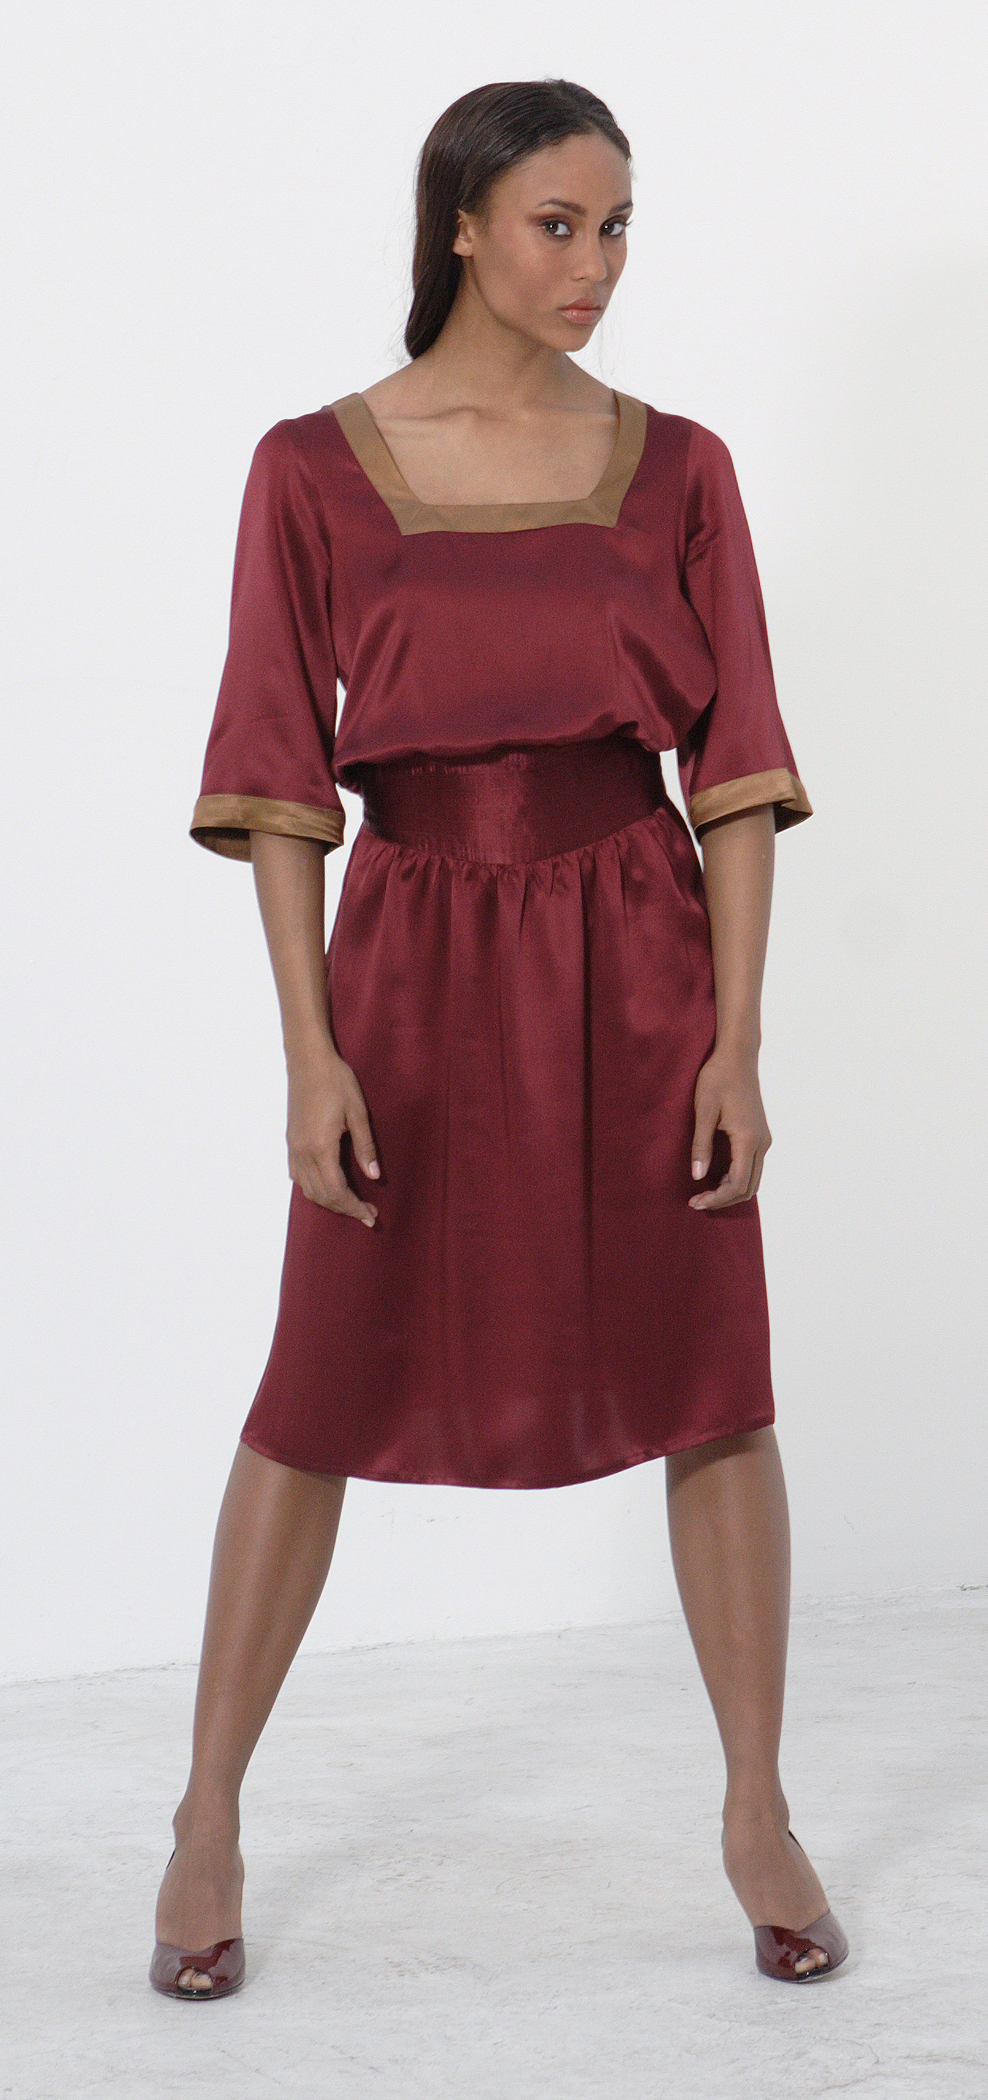 Silk Charmeuse Square Cut Dress w/ Quilt Stitch Waist.